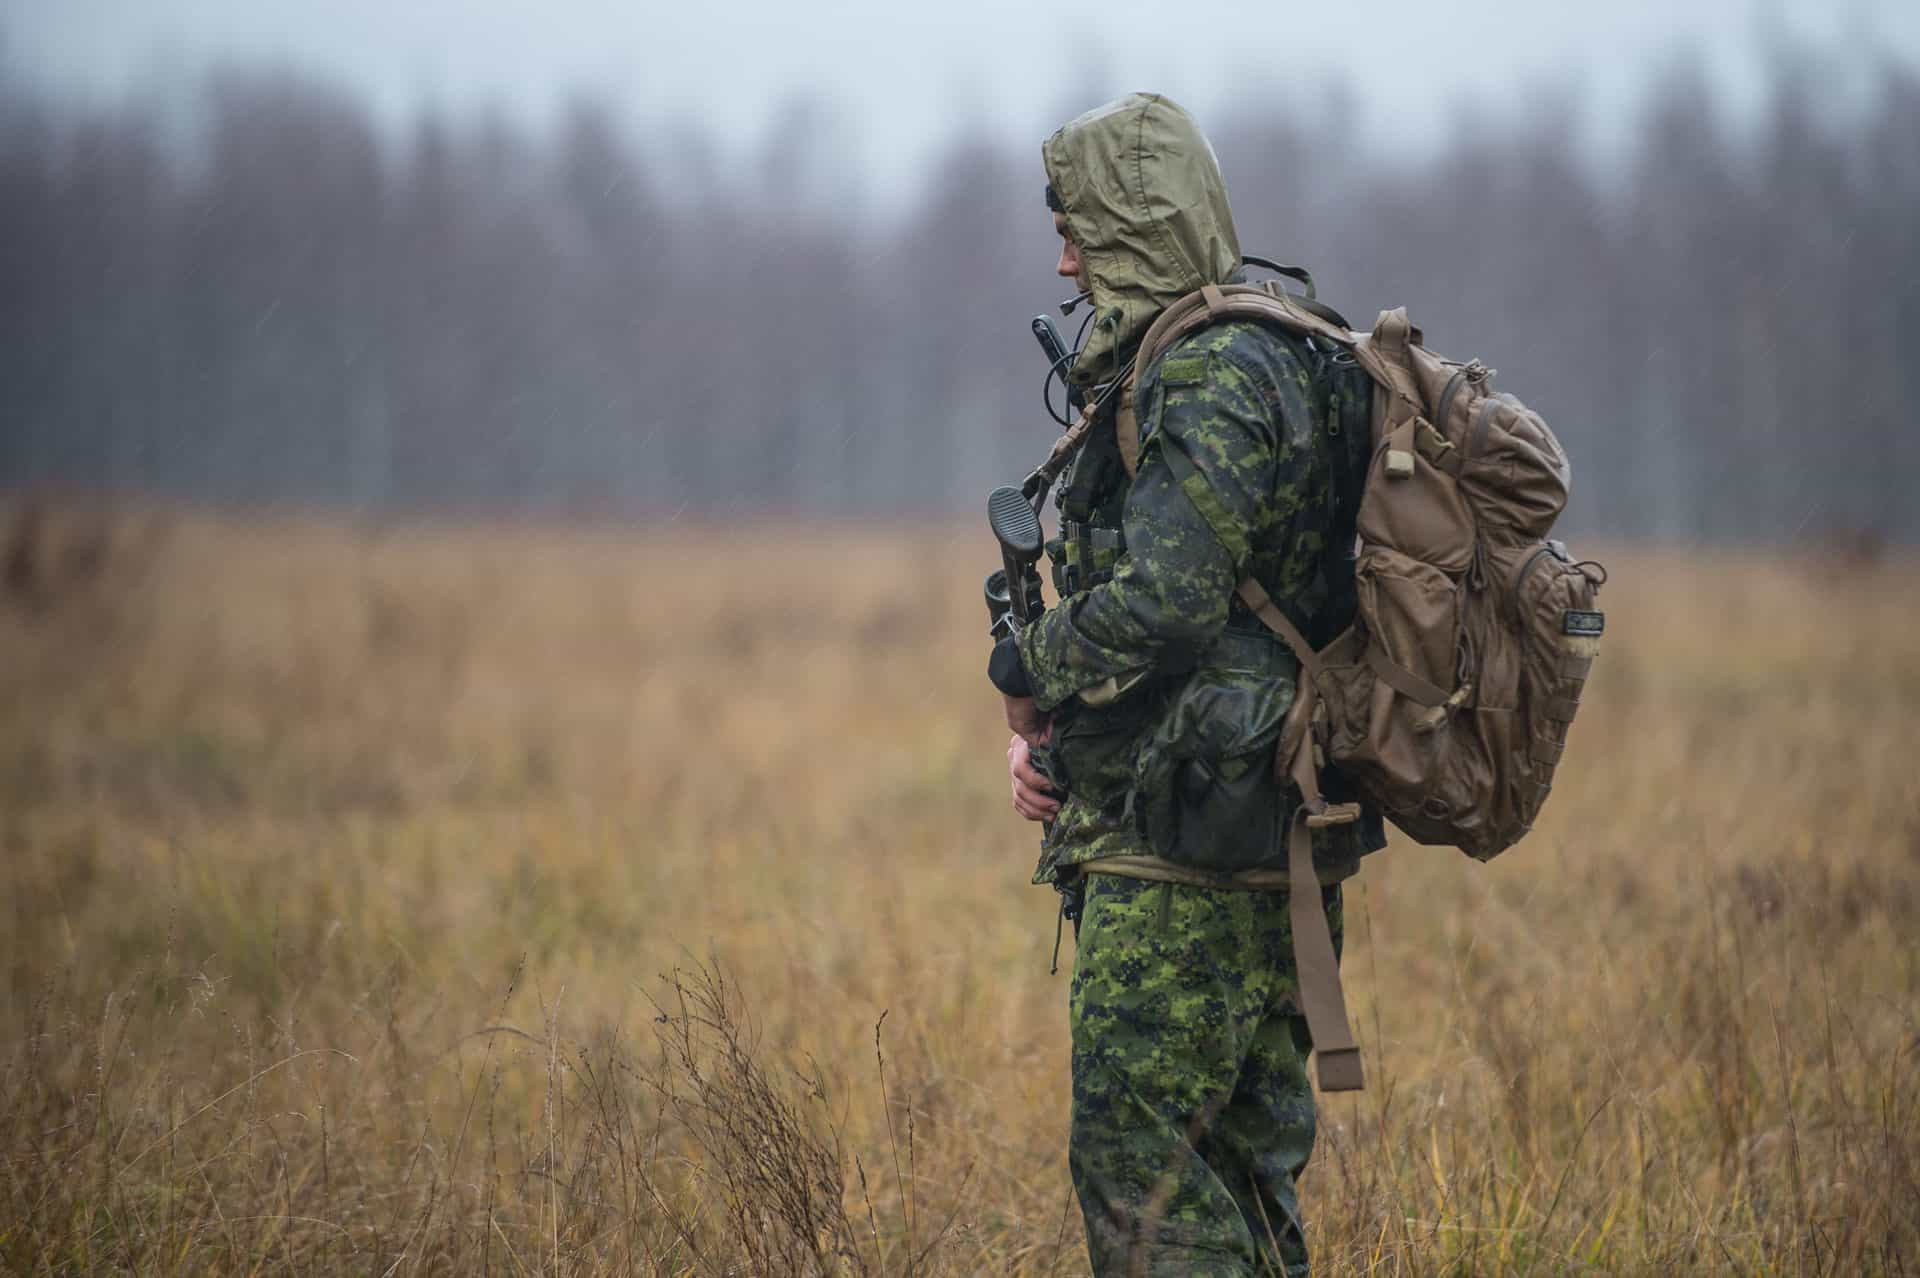 Canadian Forces Soldier standing in rain